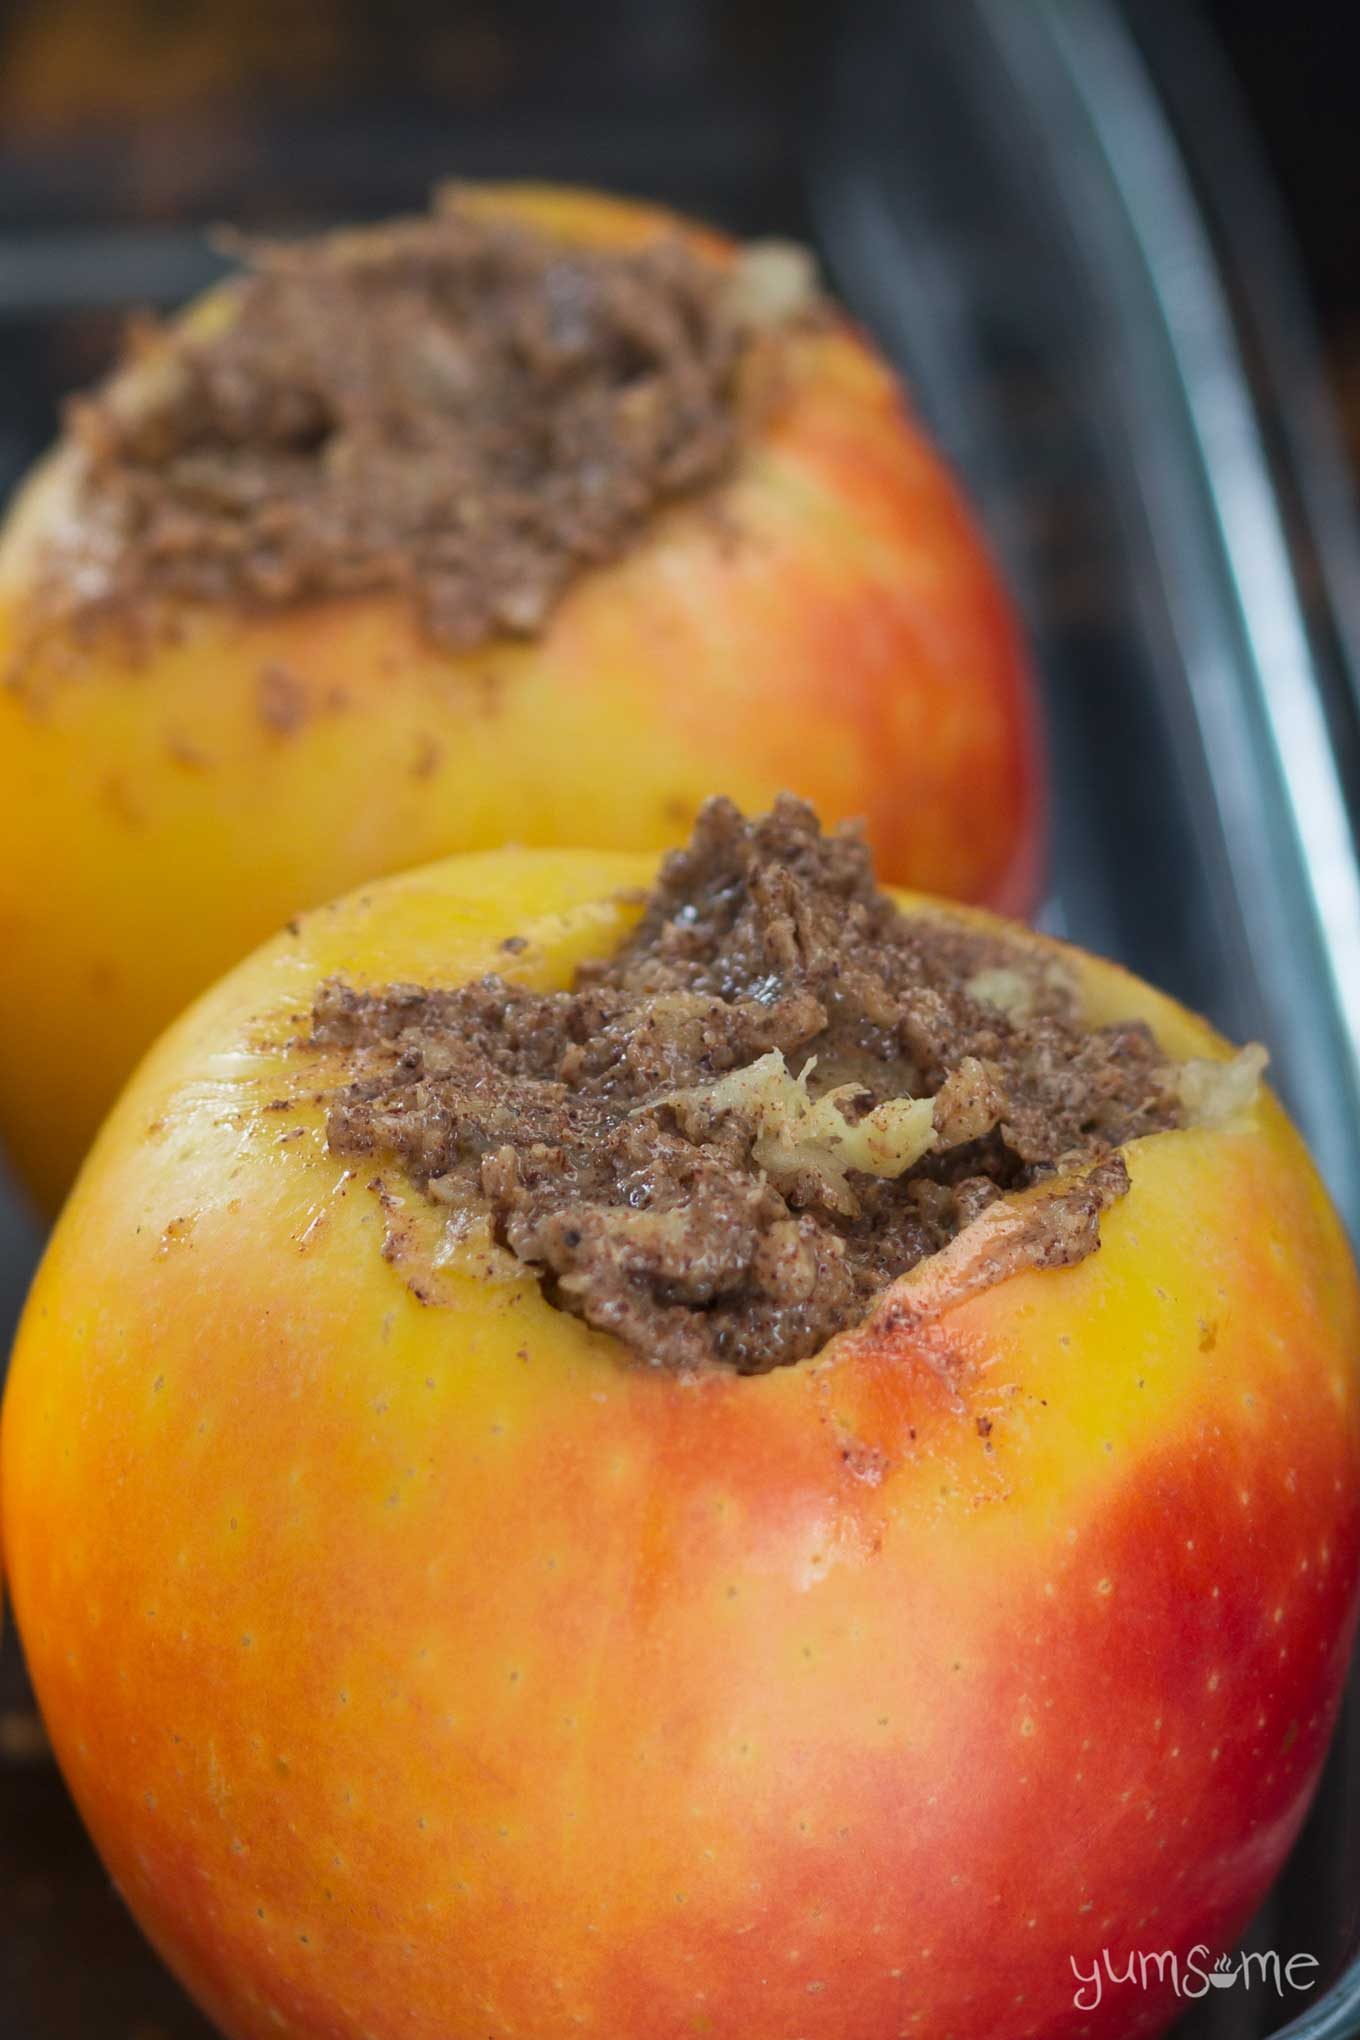 stuffed baked apples ready to be baked | yumsome.com